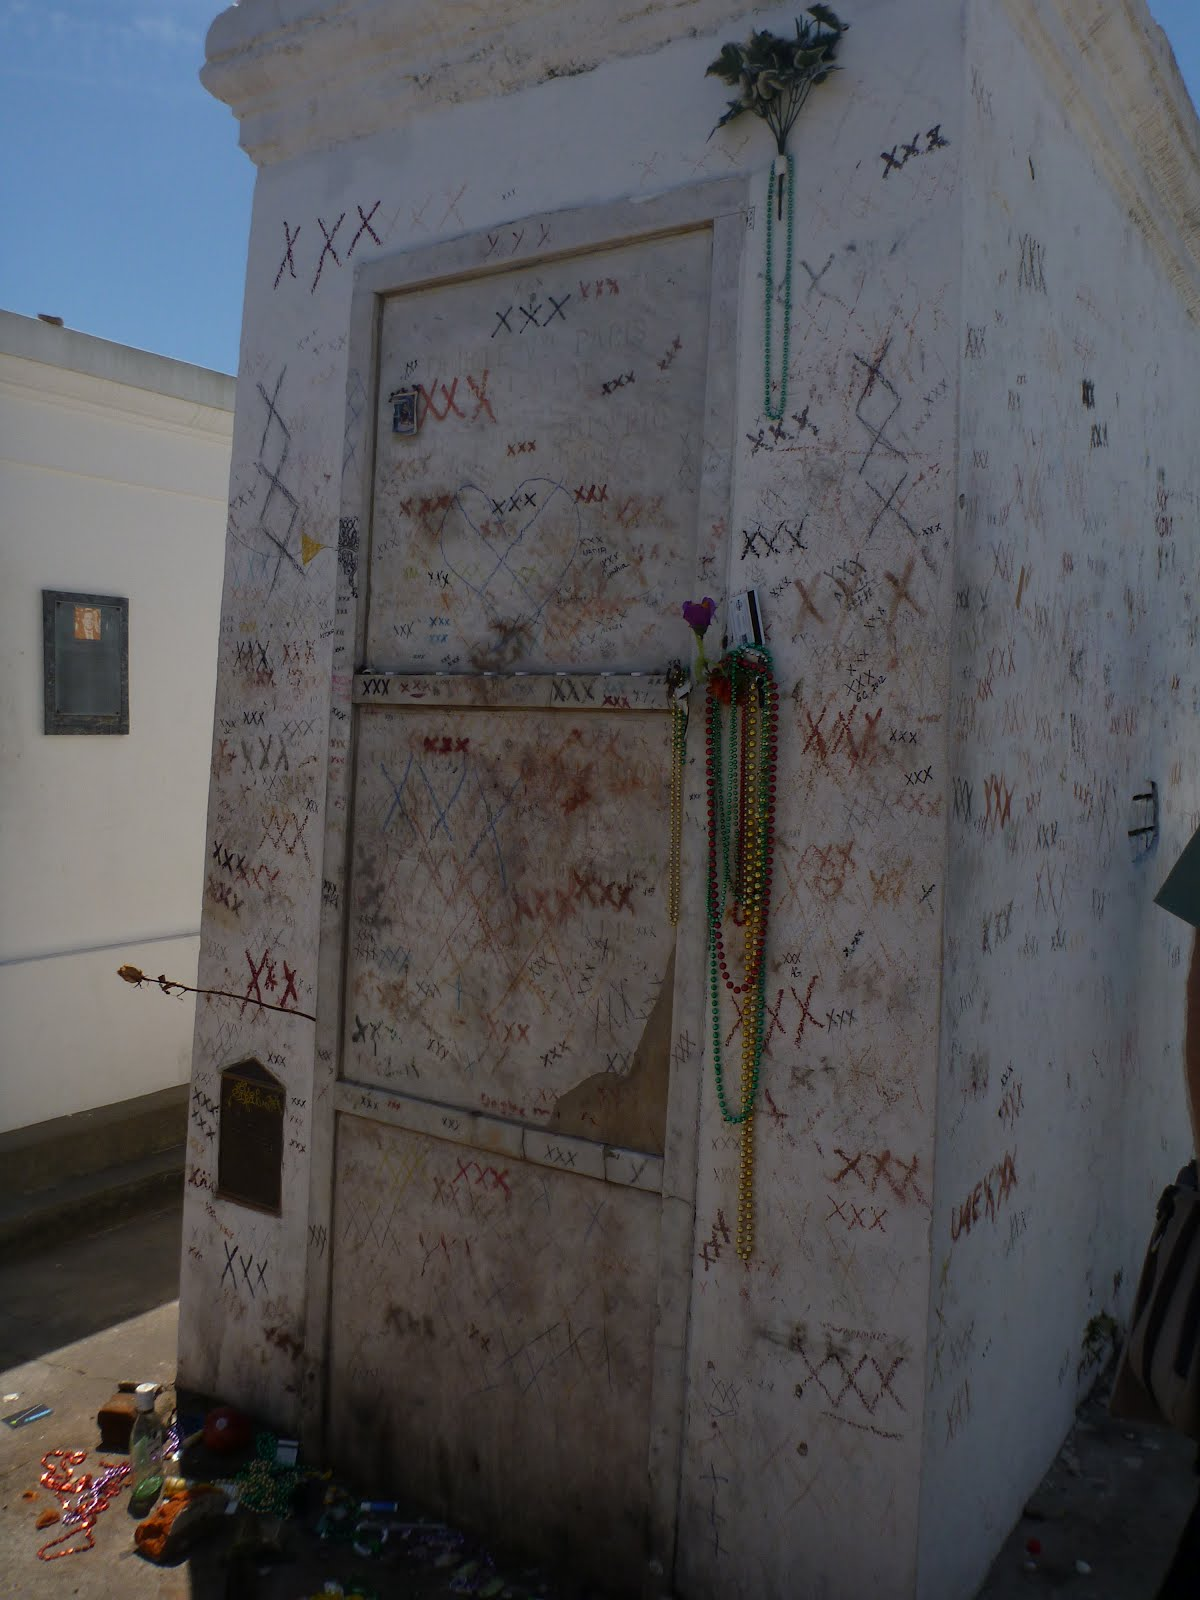 TravelMarx: The Tomb of Marie Laveau